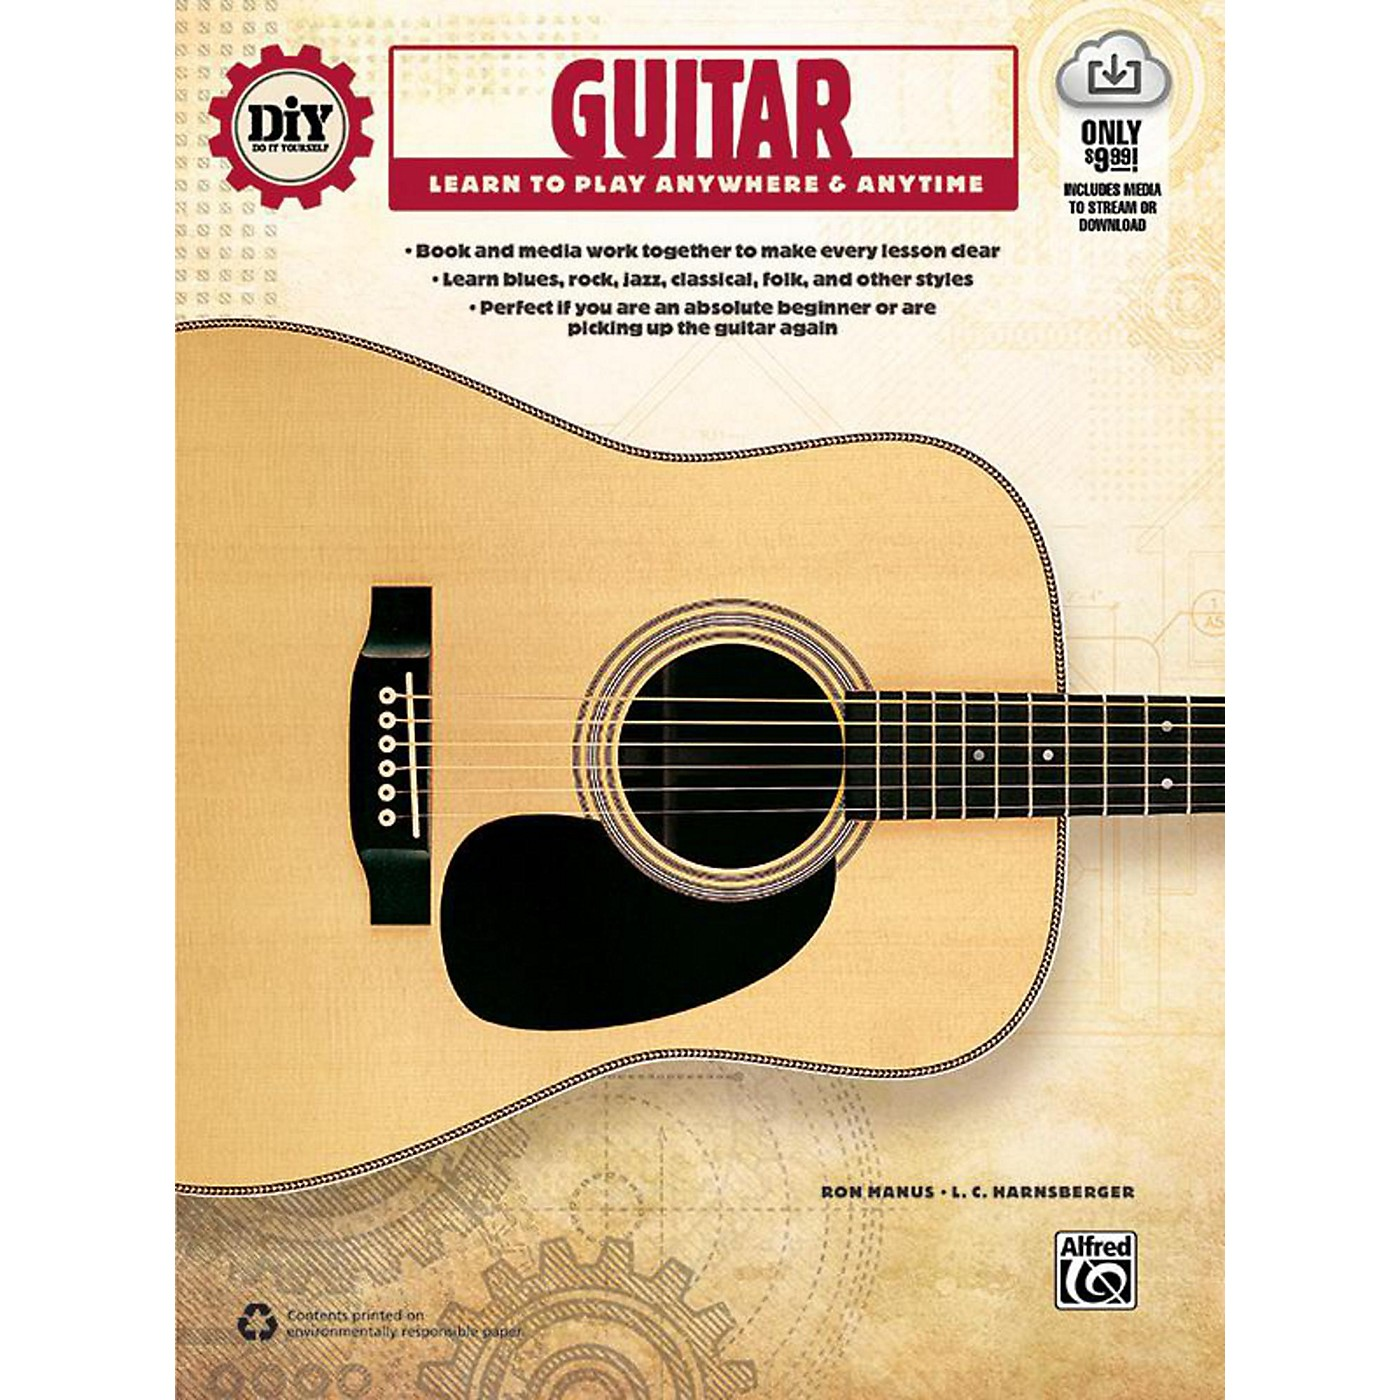 Alfred DiY (Do it Yourself) Guitar Book & Streaming Video thumbnail